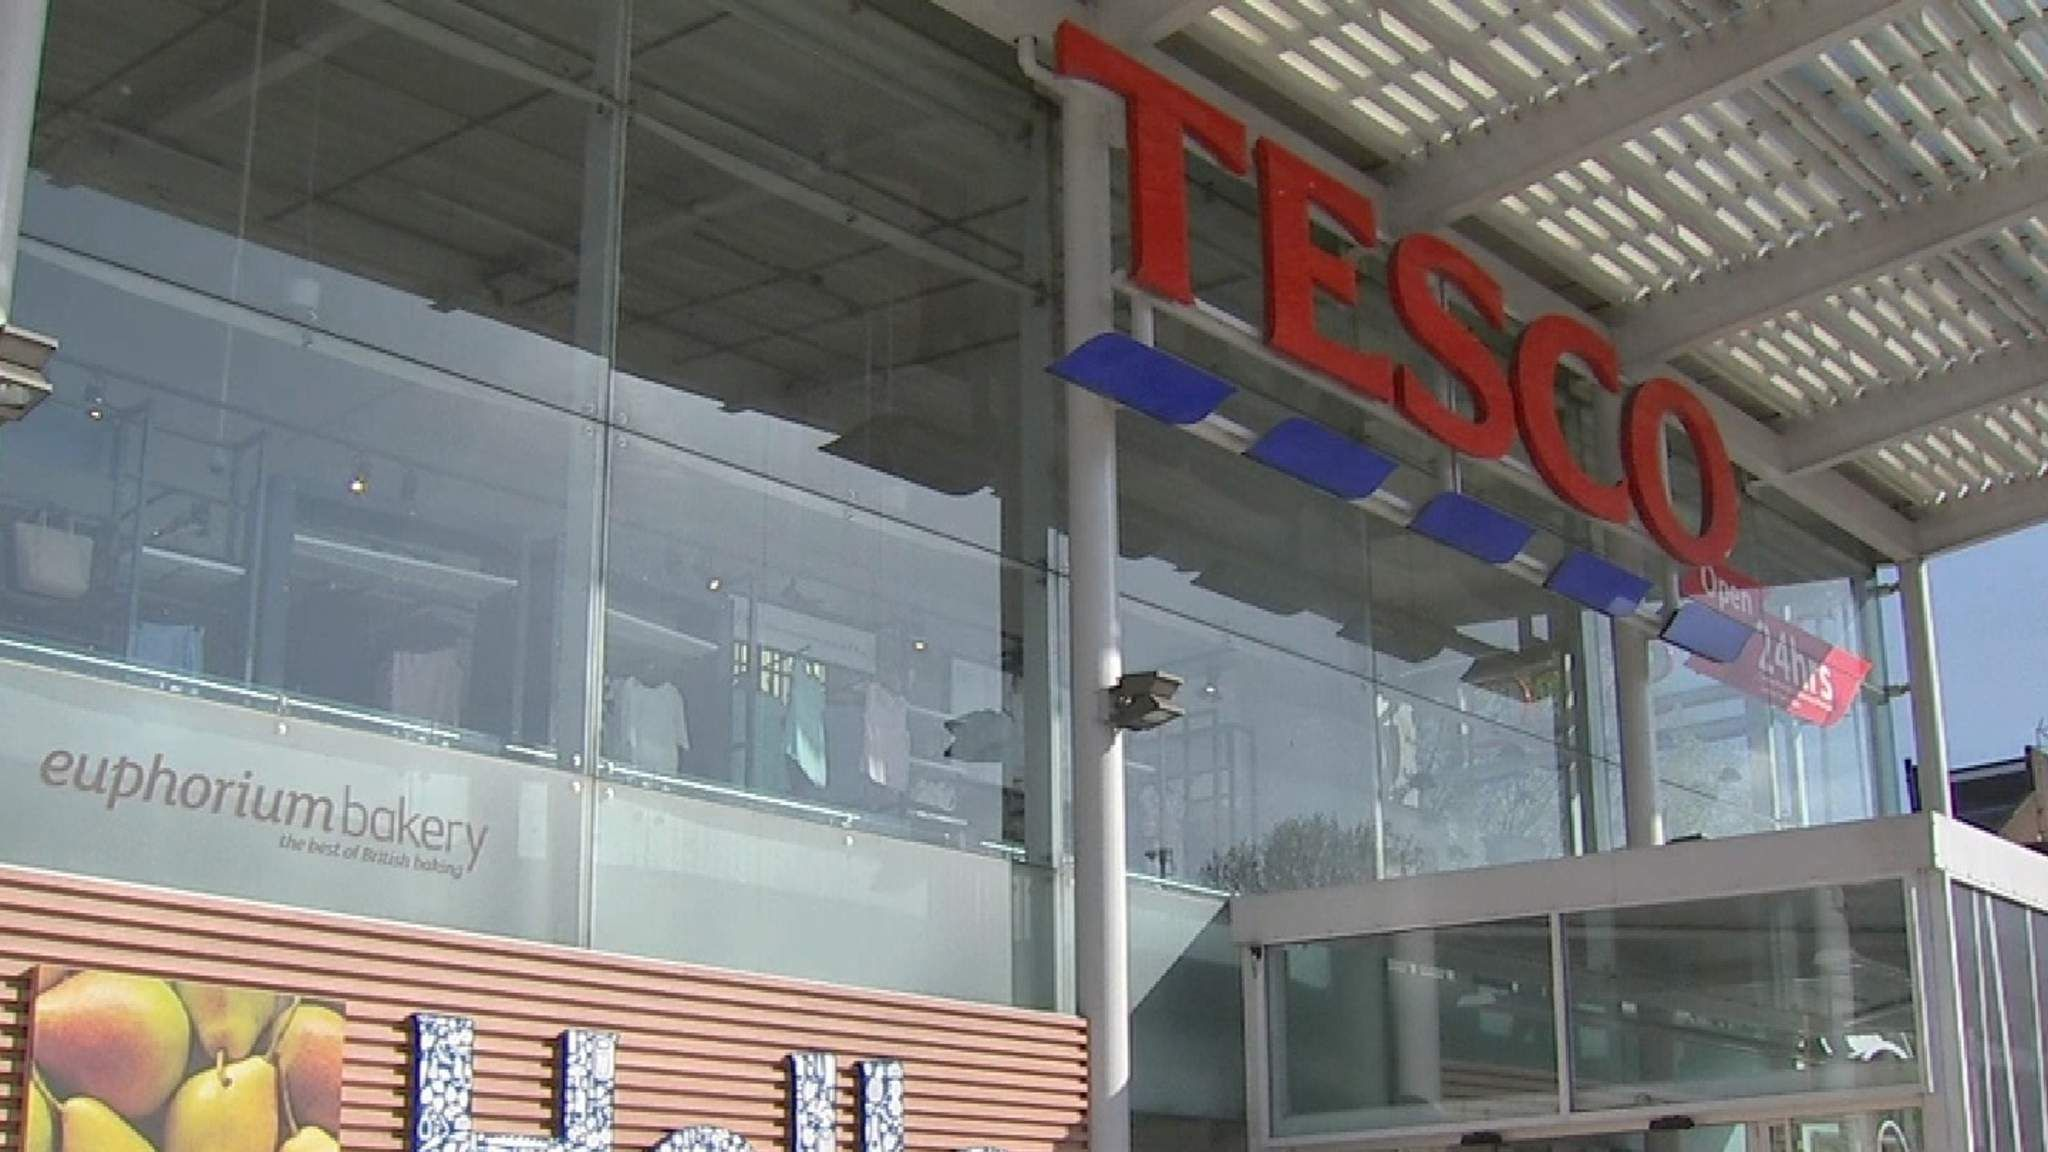 an essay on tesco stores business strategies Capacity planning and control business essay performances and strategies used by tesco food and general merchandizing stores, supermarket, tesco living.